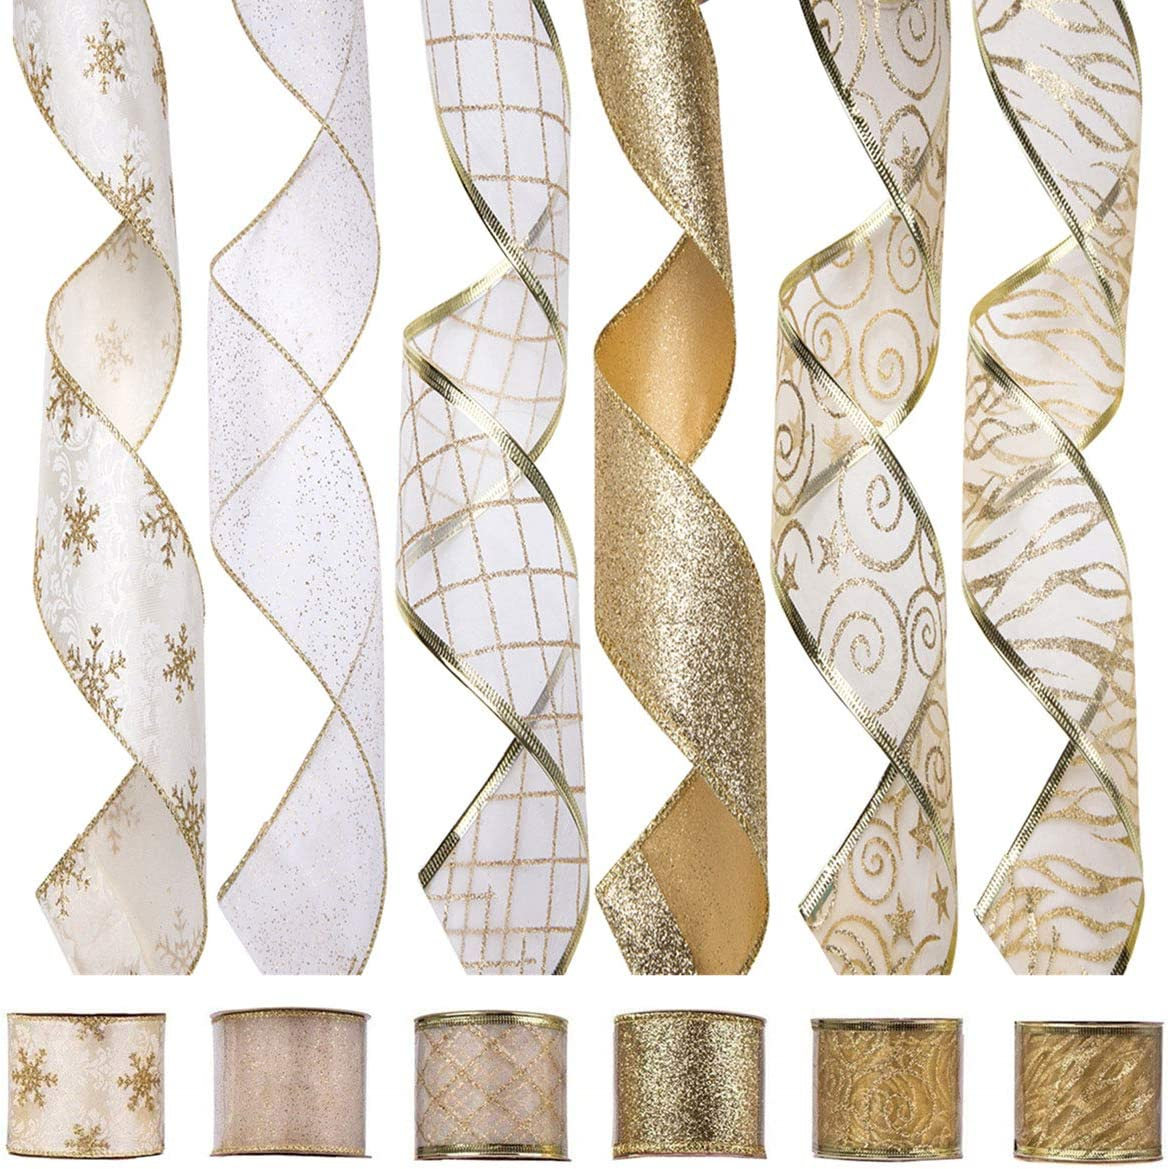 Amazon Com Arcci Christmas Wired Edge Ribbon Holiday Party Assorted Organza Swirl Sealing Sheer Glitter Gift Wrapping 36 Yards 6 Rolls X 6yd 2 5 Inch Gold White Arts Crafts Sewing